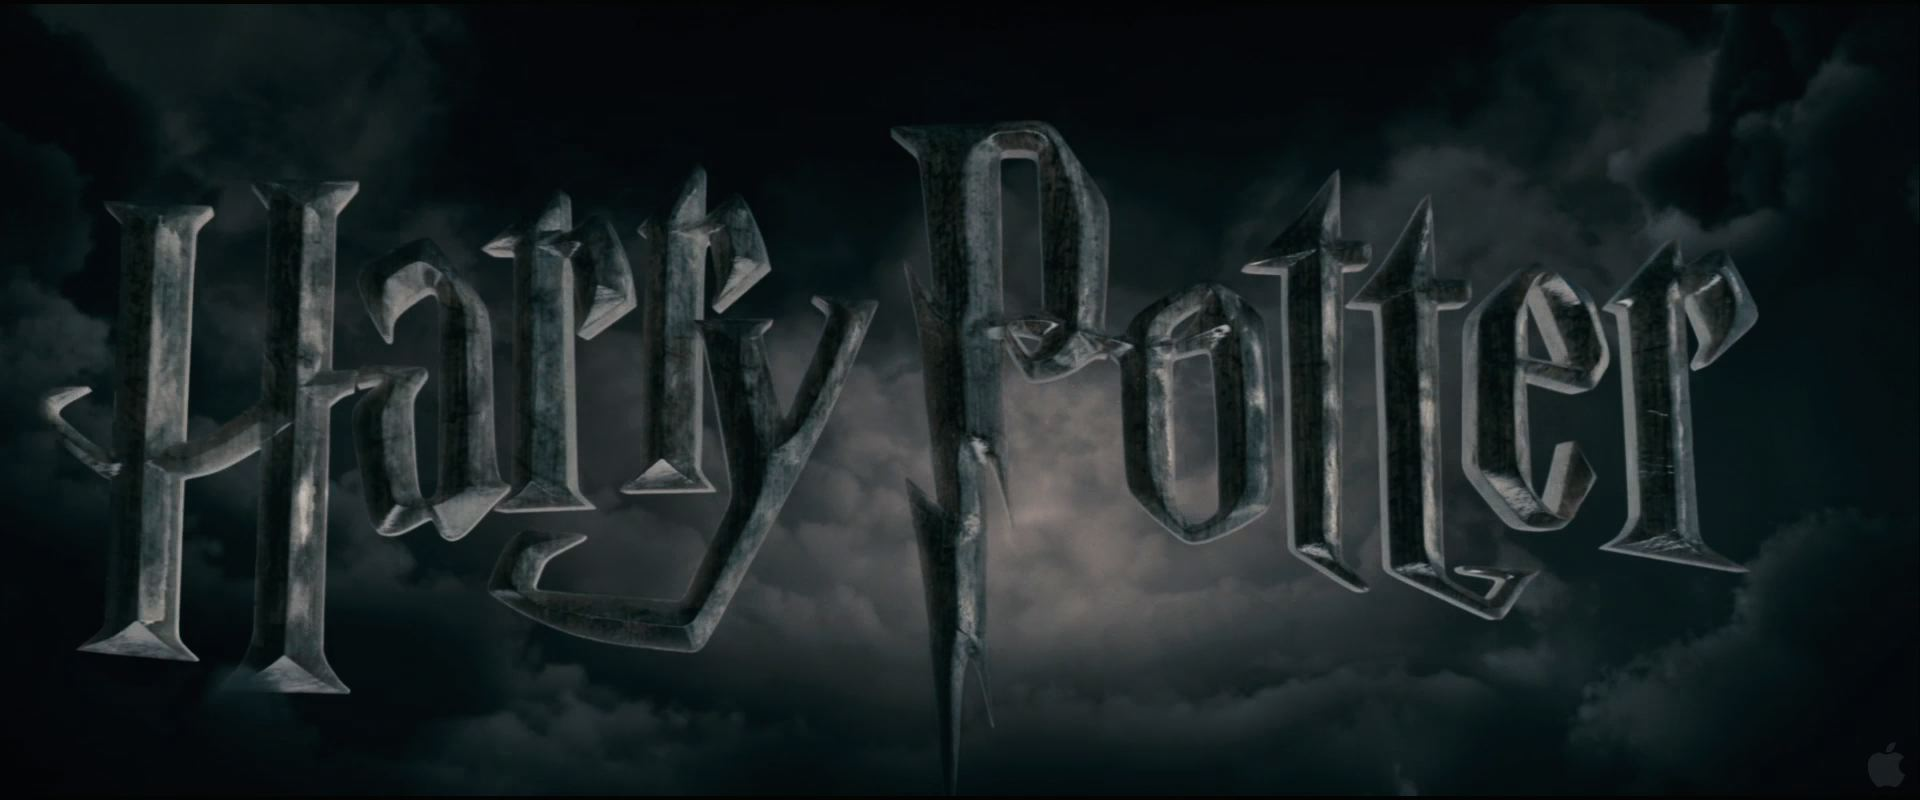 Harry Potter Movie Logo wallpaper   Click picture for high resolution 1920x800